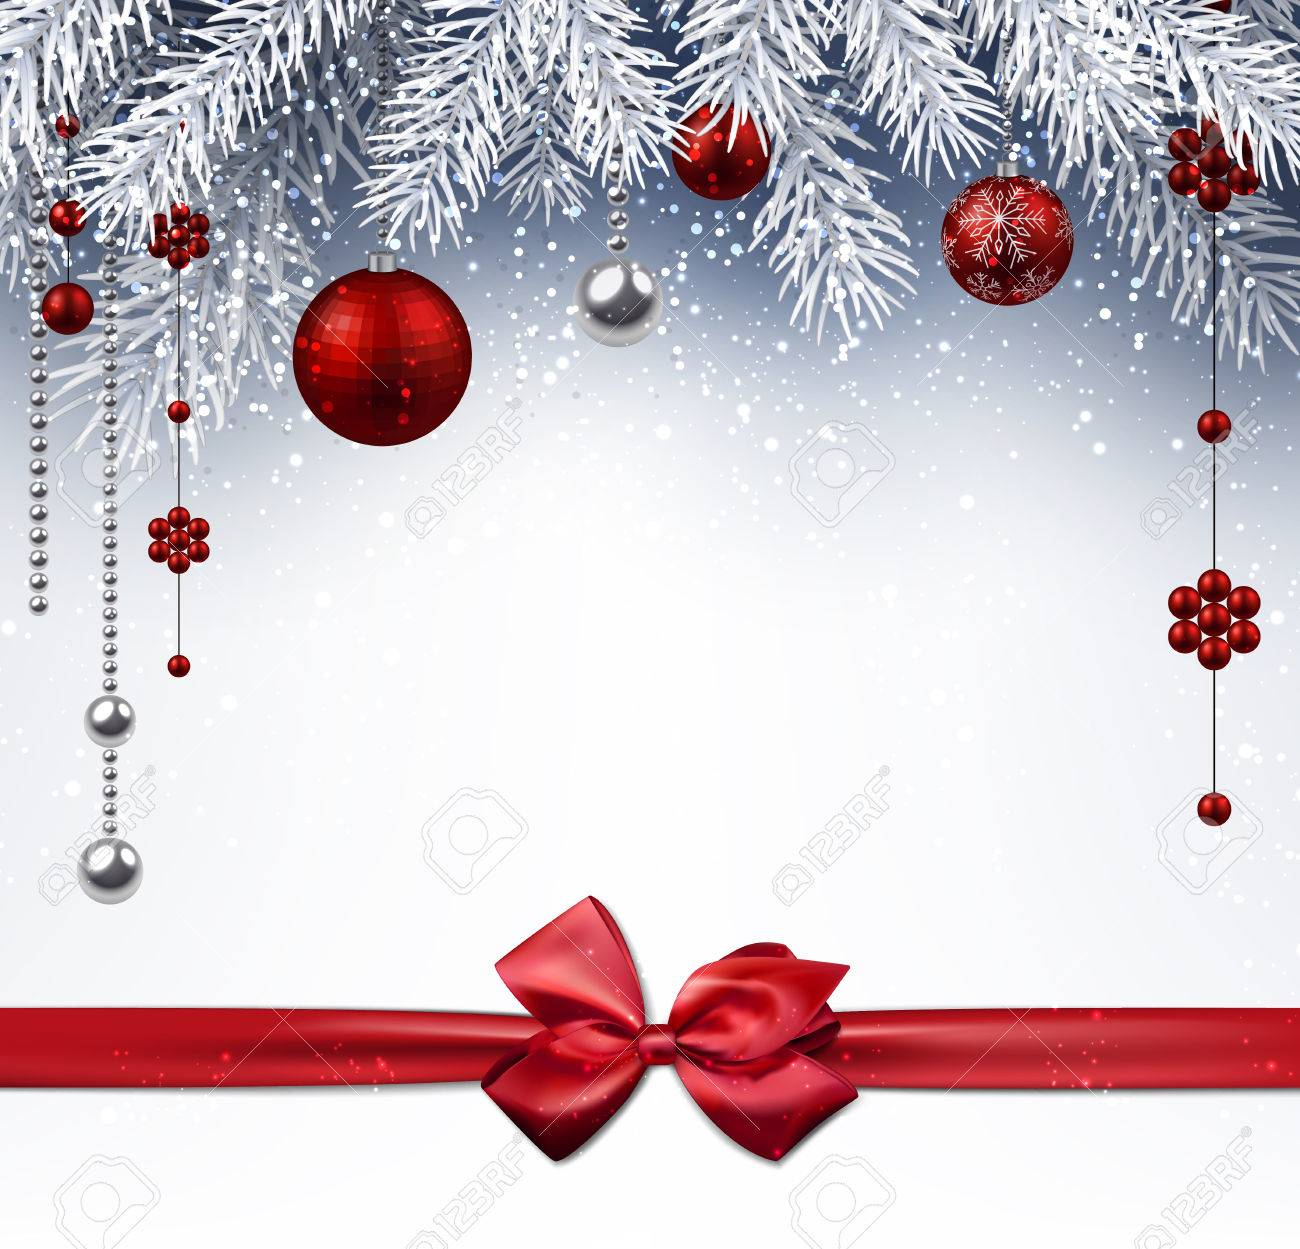 Christmas background with red balls and bow. Vector illustration. - 48772015